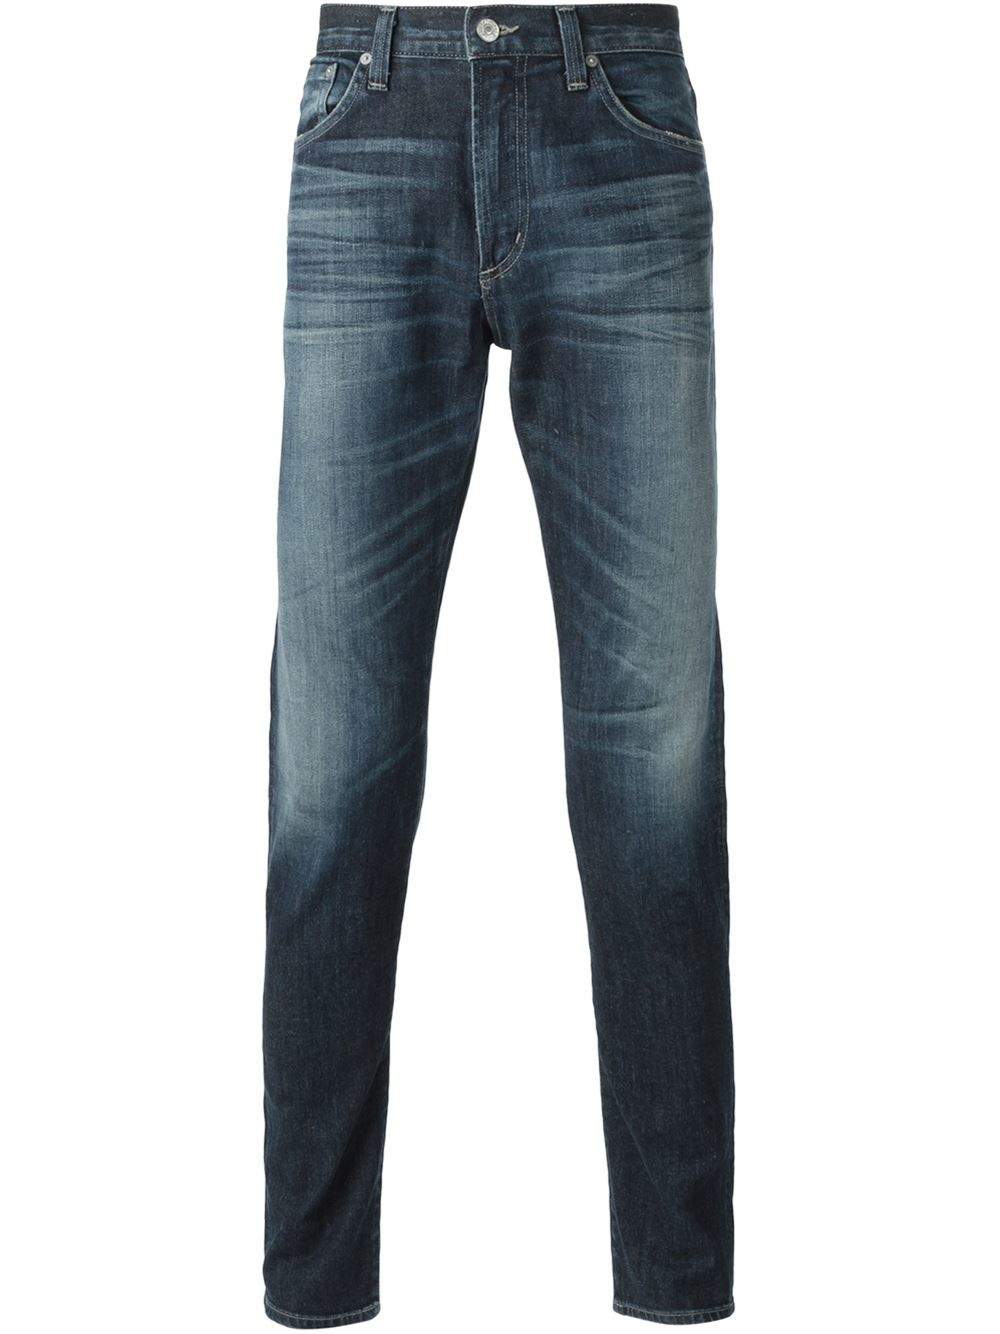 citizens of humanity slim fit jeans in blue for men lyst. Black Bedroom Furniture Sets. Home Design Ideas